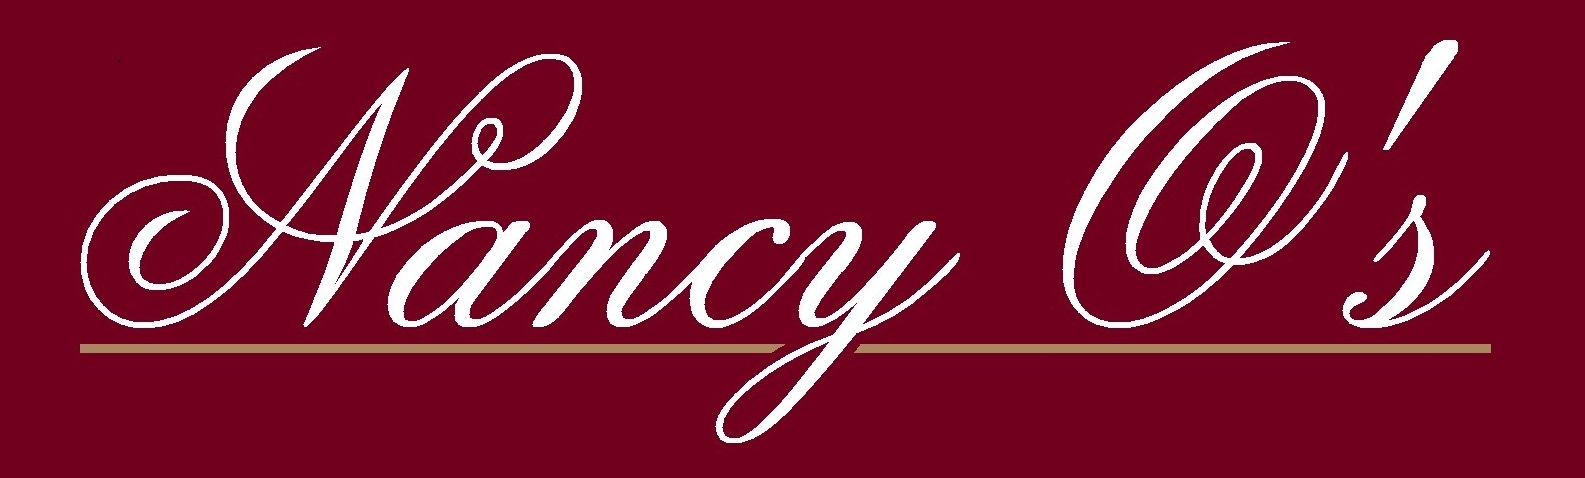 NANCY O'S logo